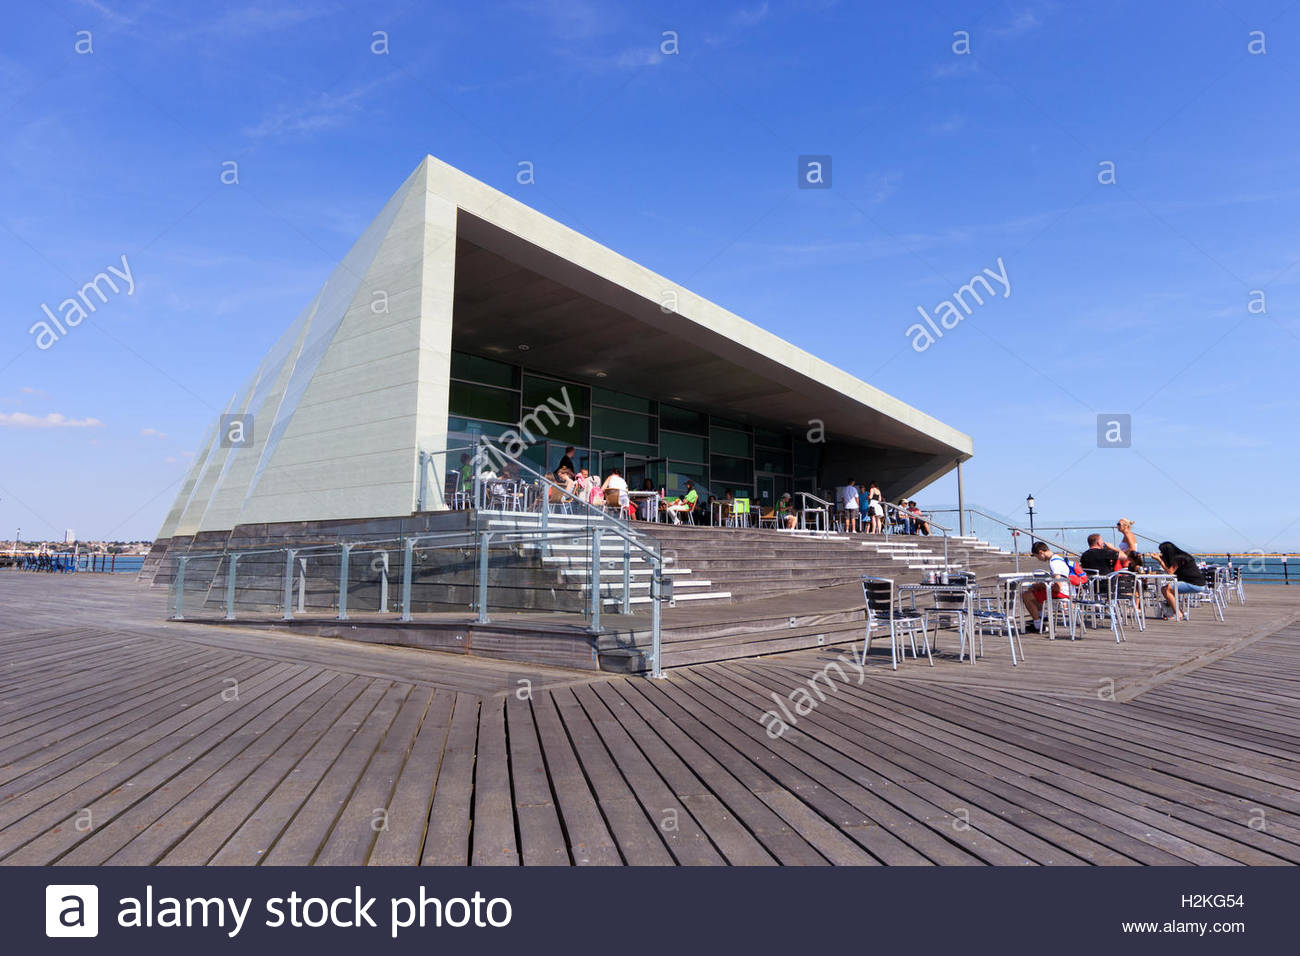 The front corner of Southend Pier's Royal Pavilion with its wheelchair ramp designed as part of the Pavilion's architecture - Stock Image